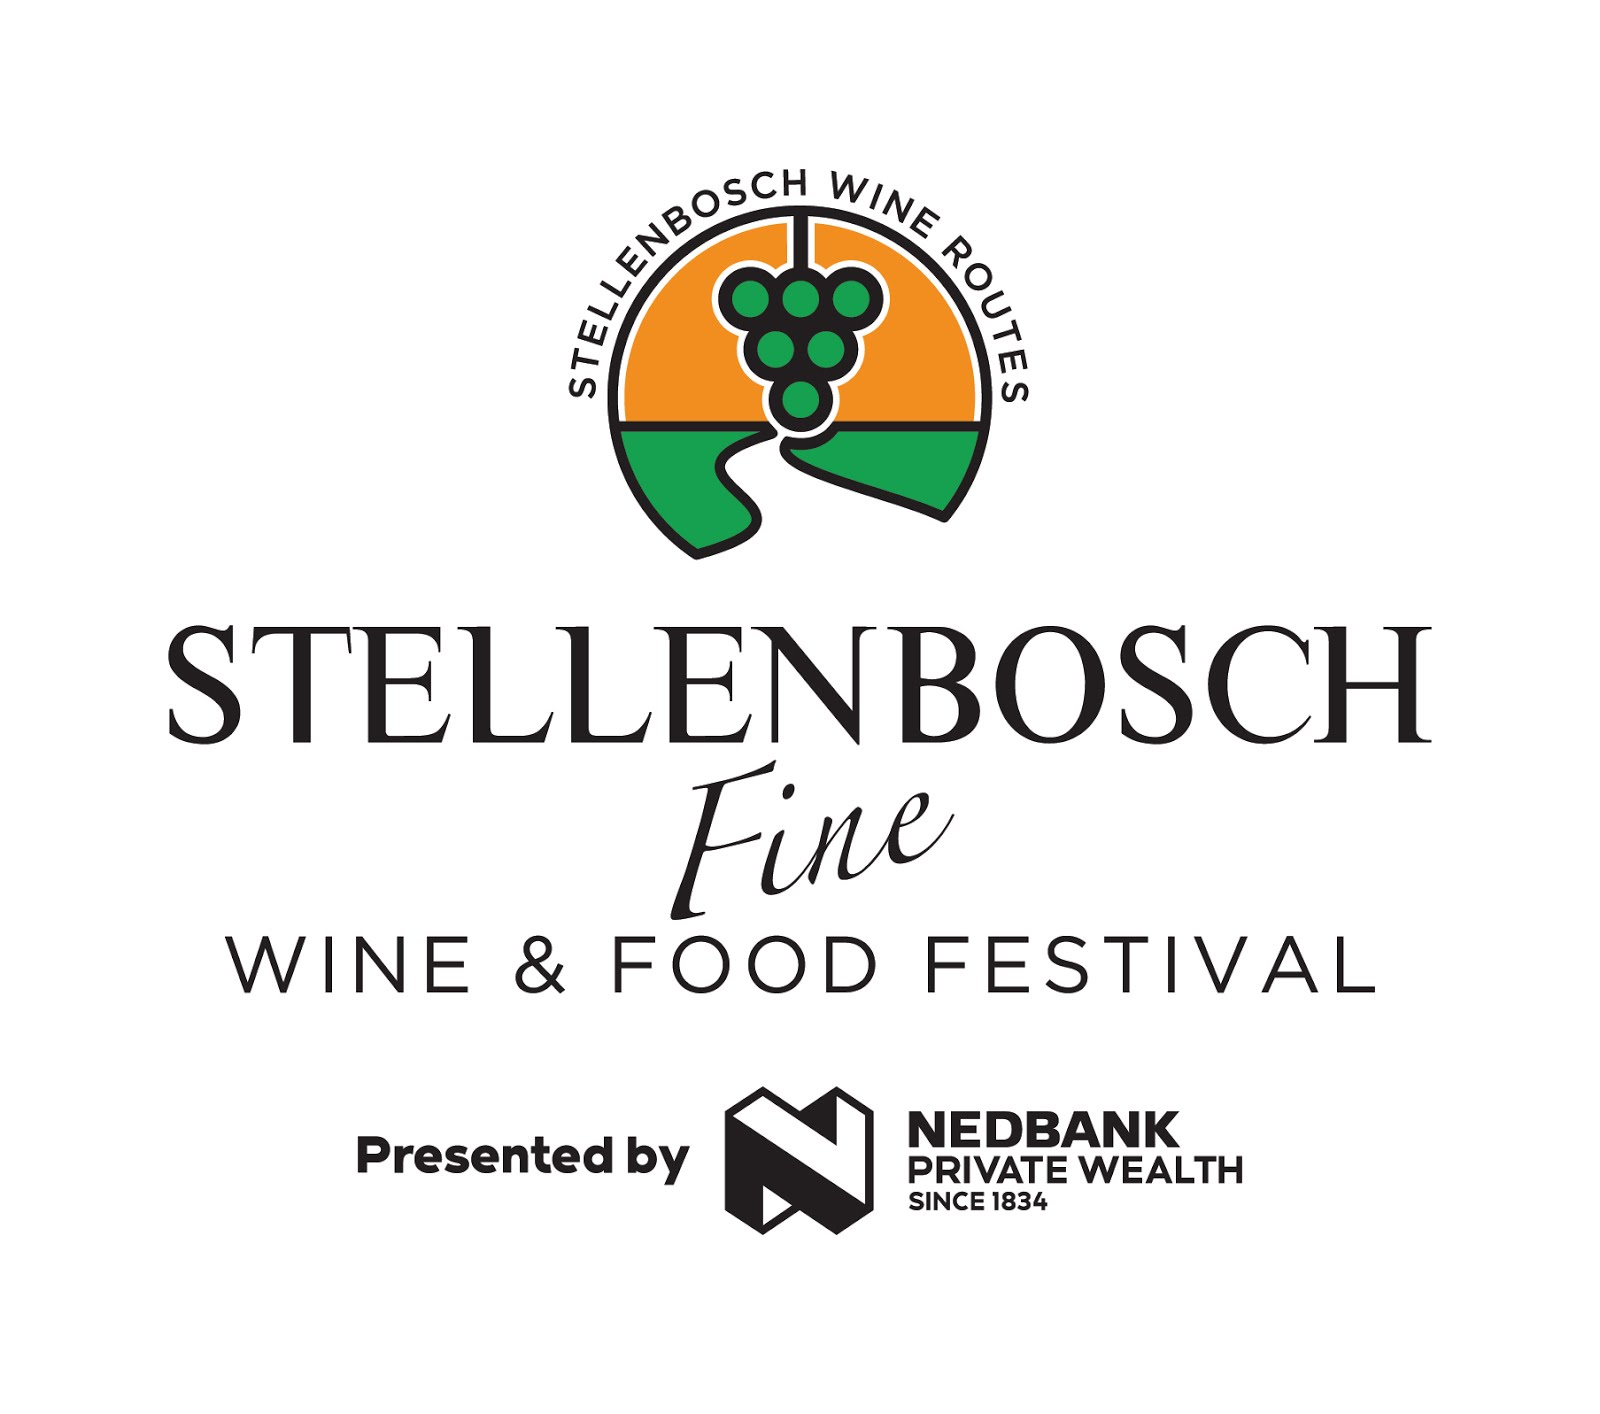 Book a ticket to the Stellenbosch Fine Wine & Food Festival